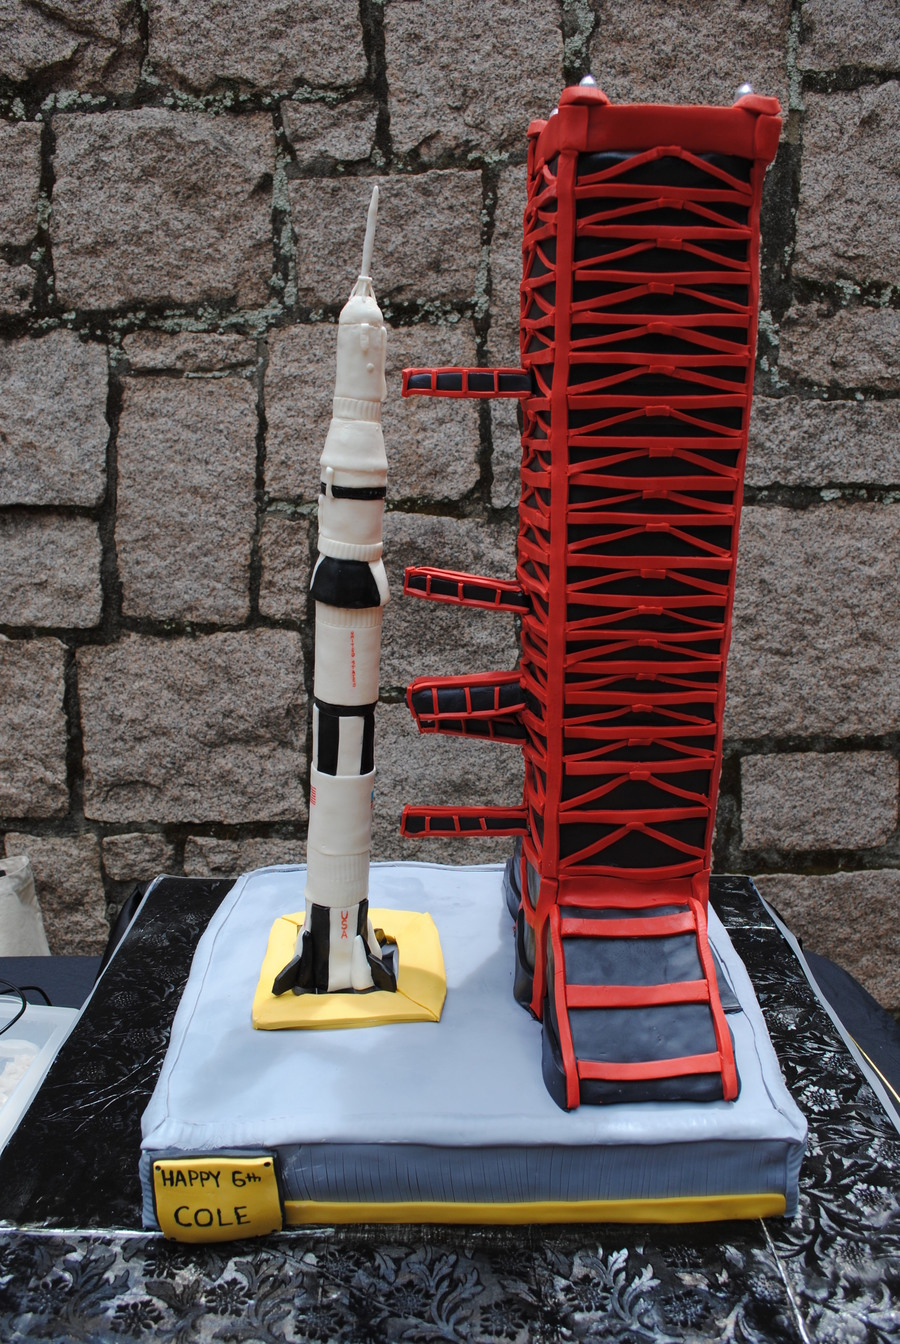 Extreme Saturn V Rocket Cake With Launch Pad And Tower